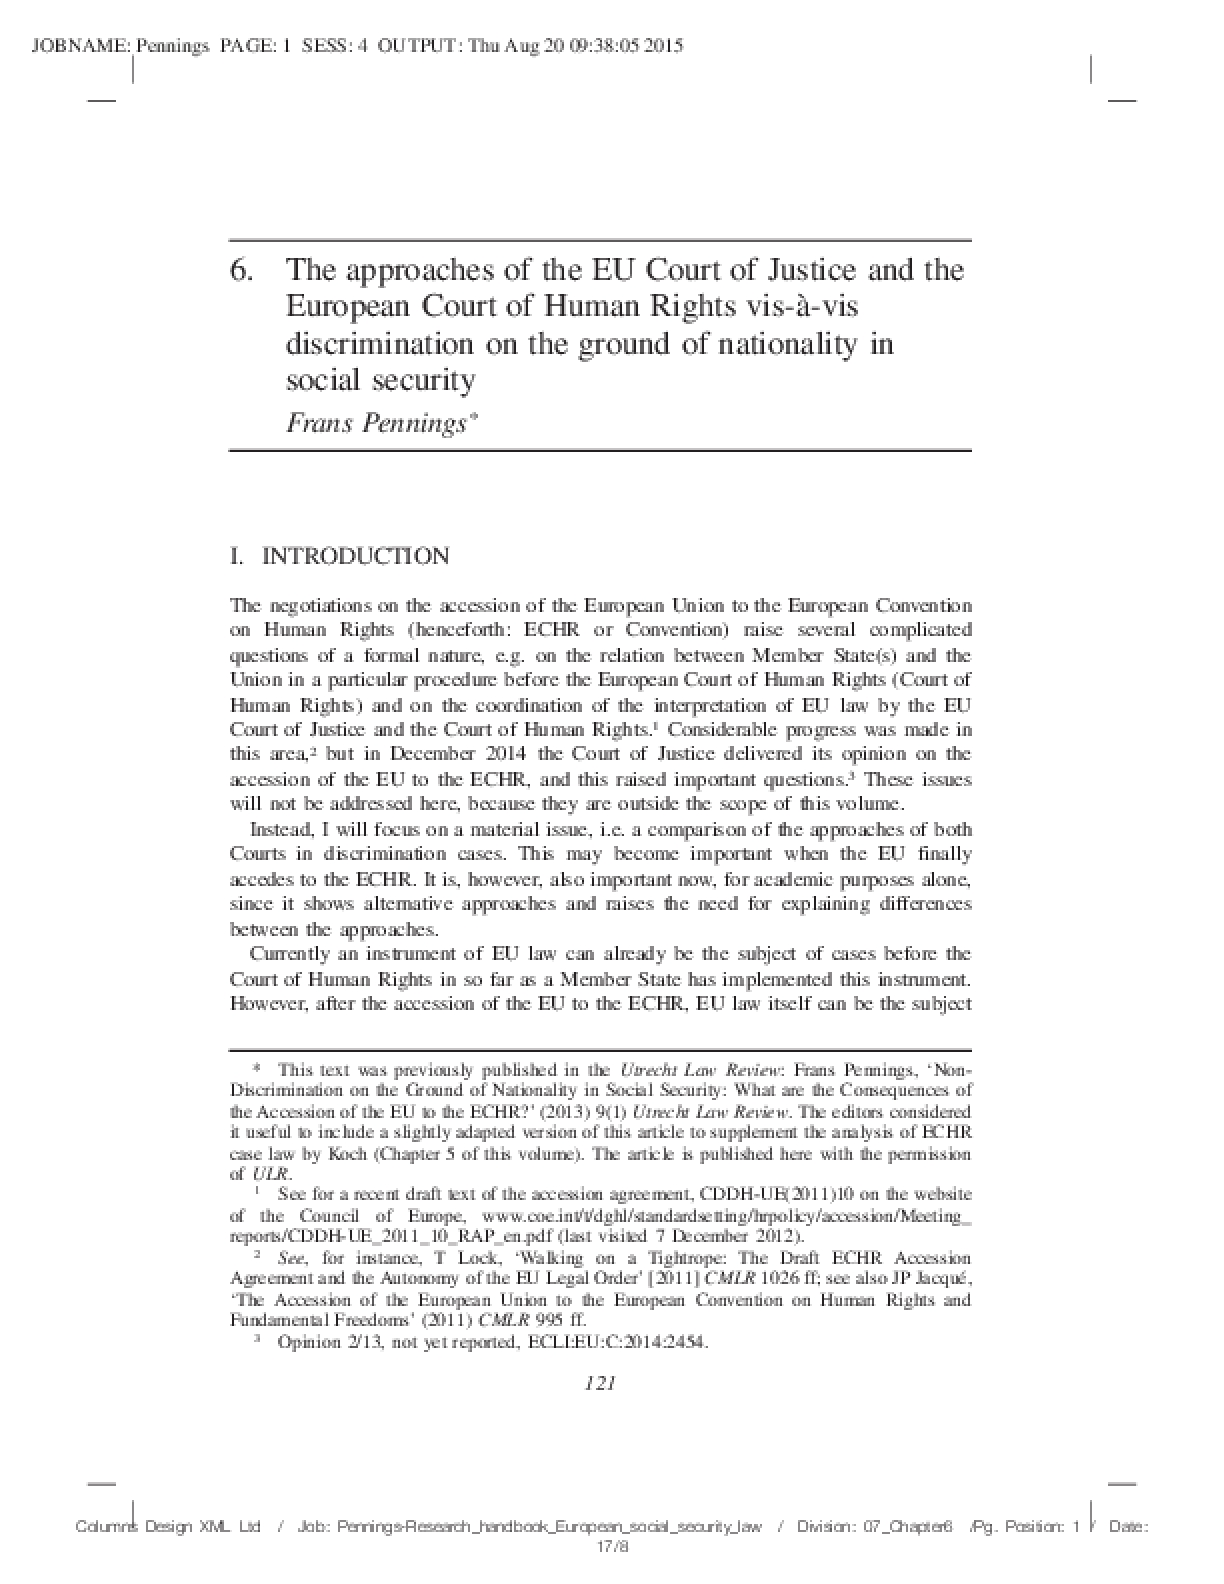 The Approaches of the EU Court of Justice and the European Court of Human Rights vis-à-vis Discrimination on the Ground of Nationality in Social Security